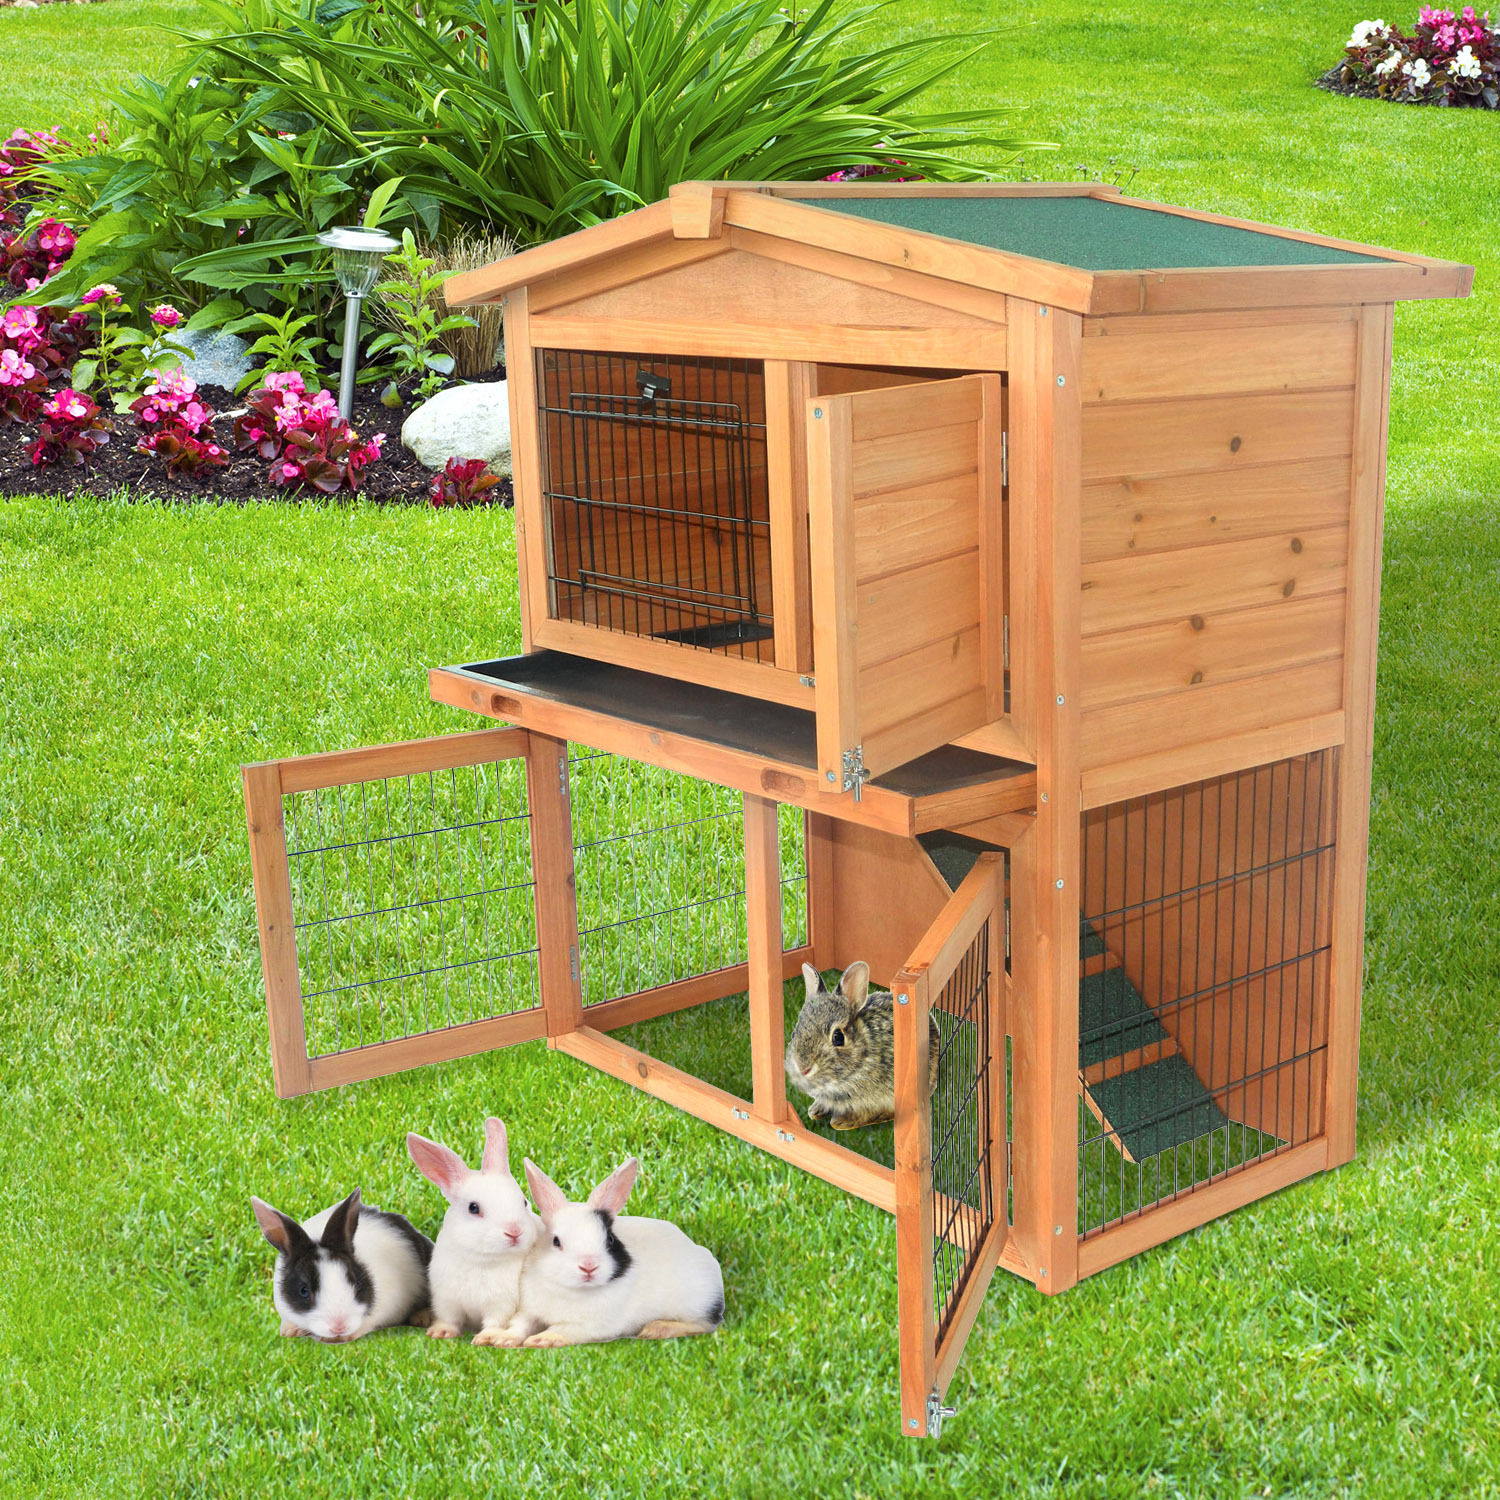 Blog tips on rabbit hutch construction for What is a rabbit hutch